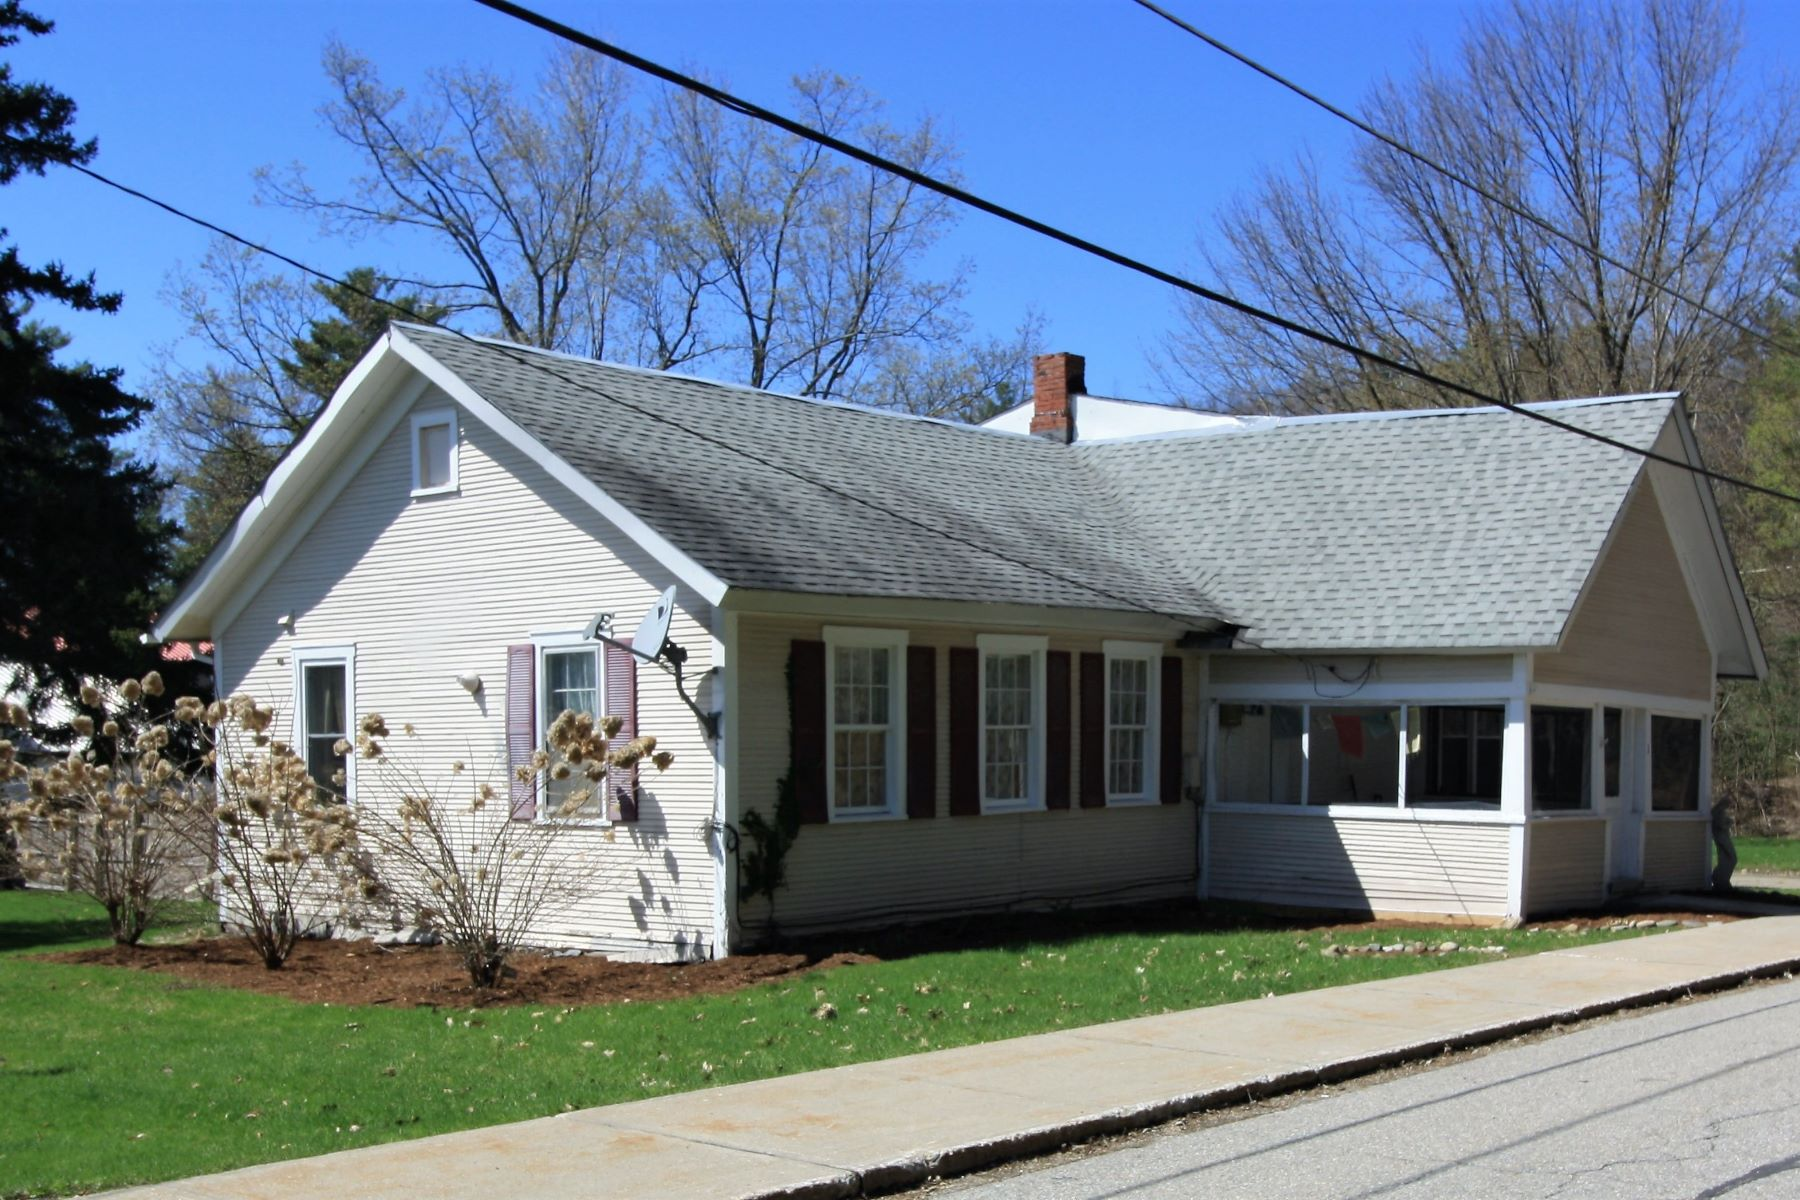 Multi-Family Homes for Sale at Updated Two Family Home 1 Piper Rd Middlebury, Vermont 05740 United States